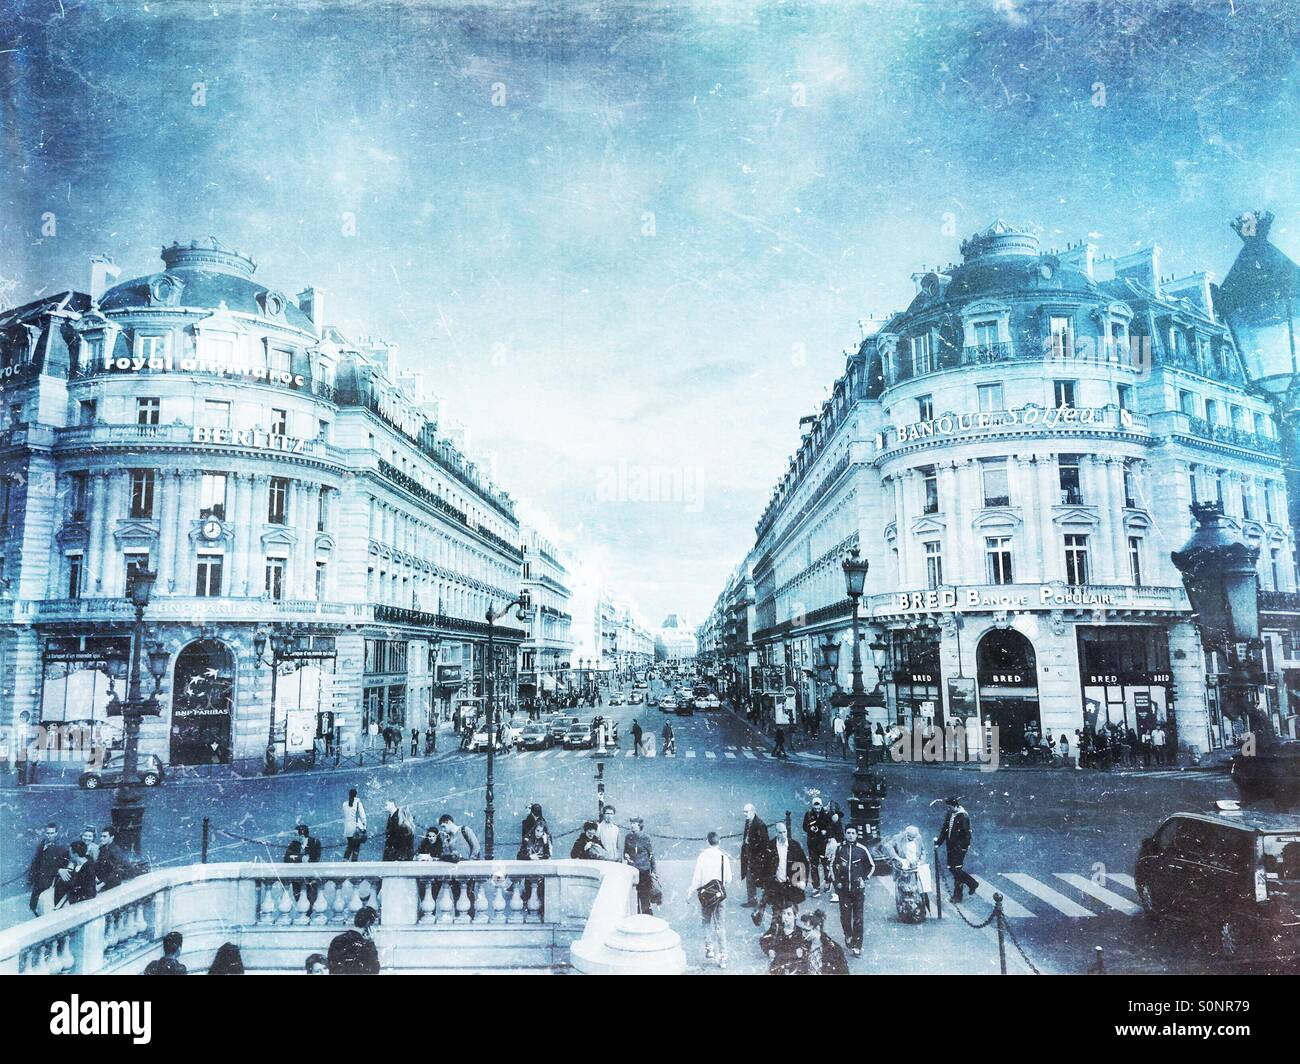 View of street intersection with classical architecture along Les Grands Boulevards in Paris, France. Frosty, winter Stock Photo